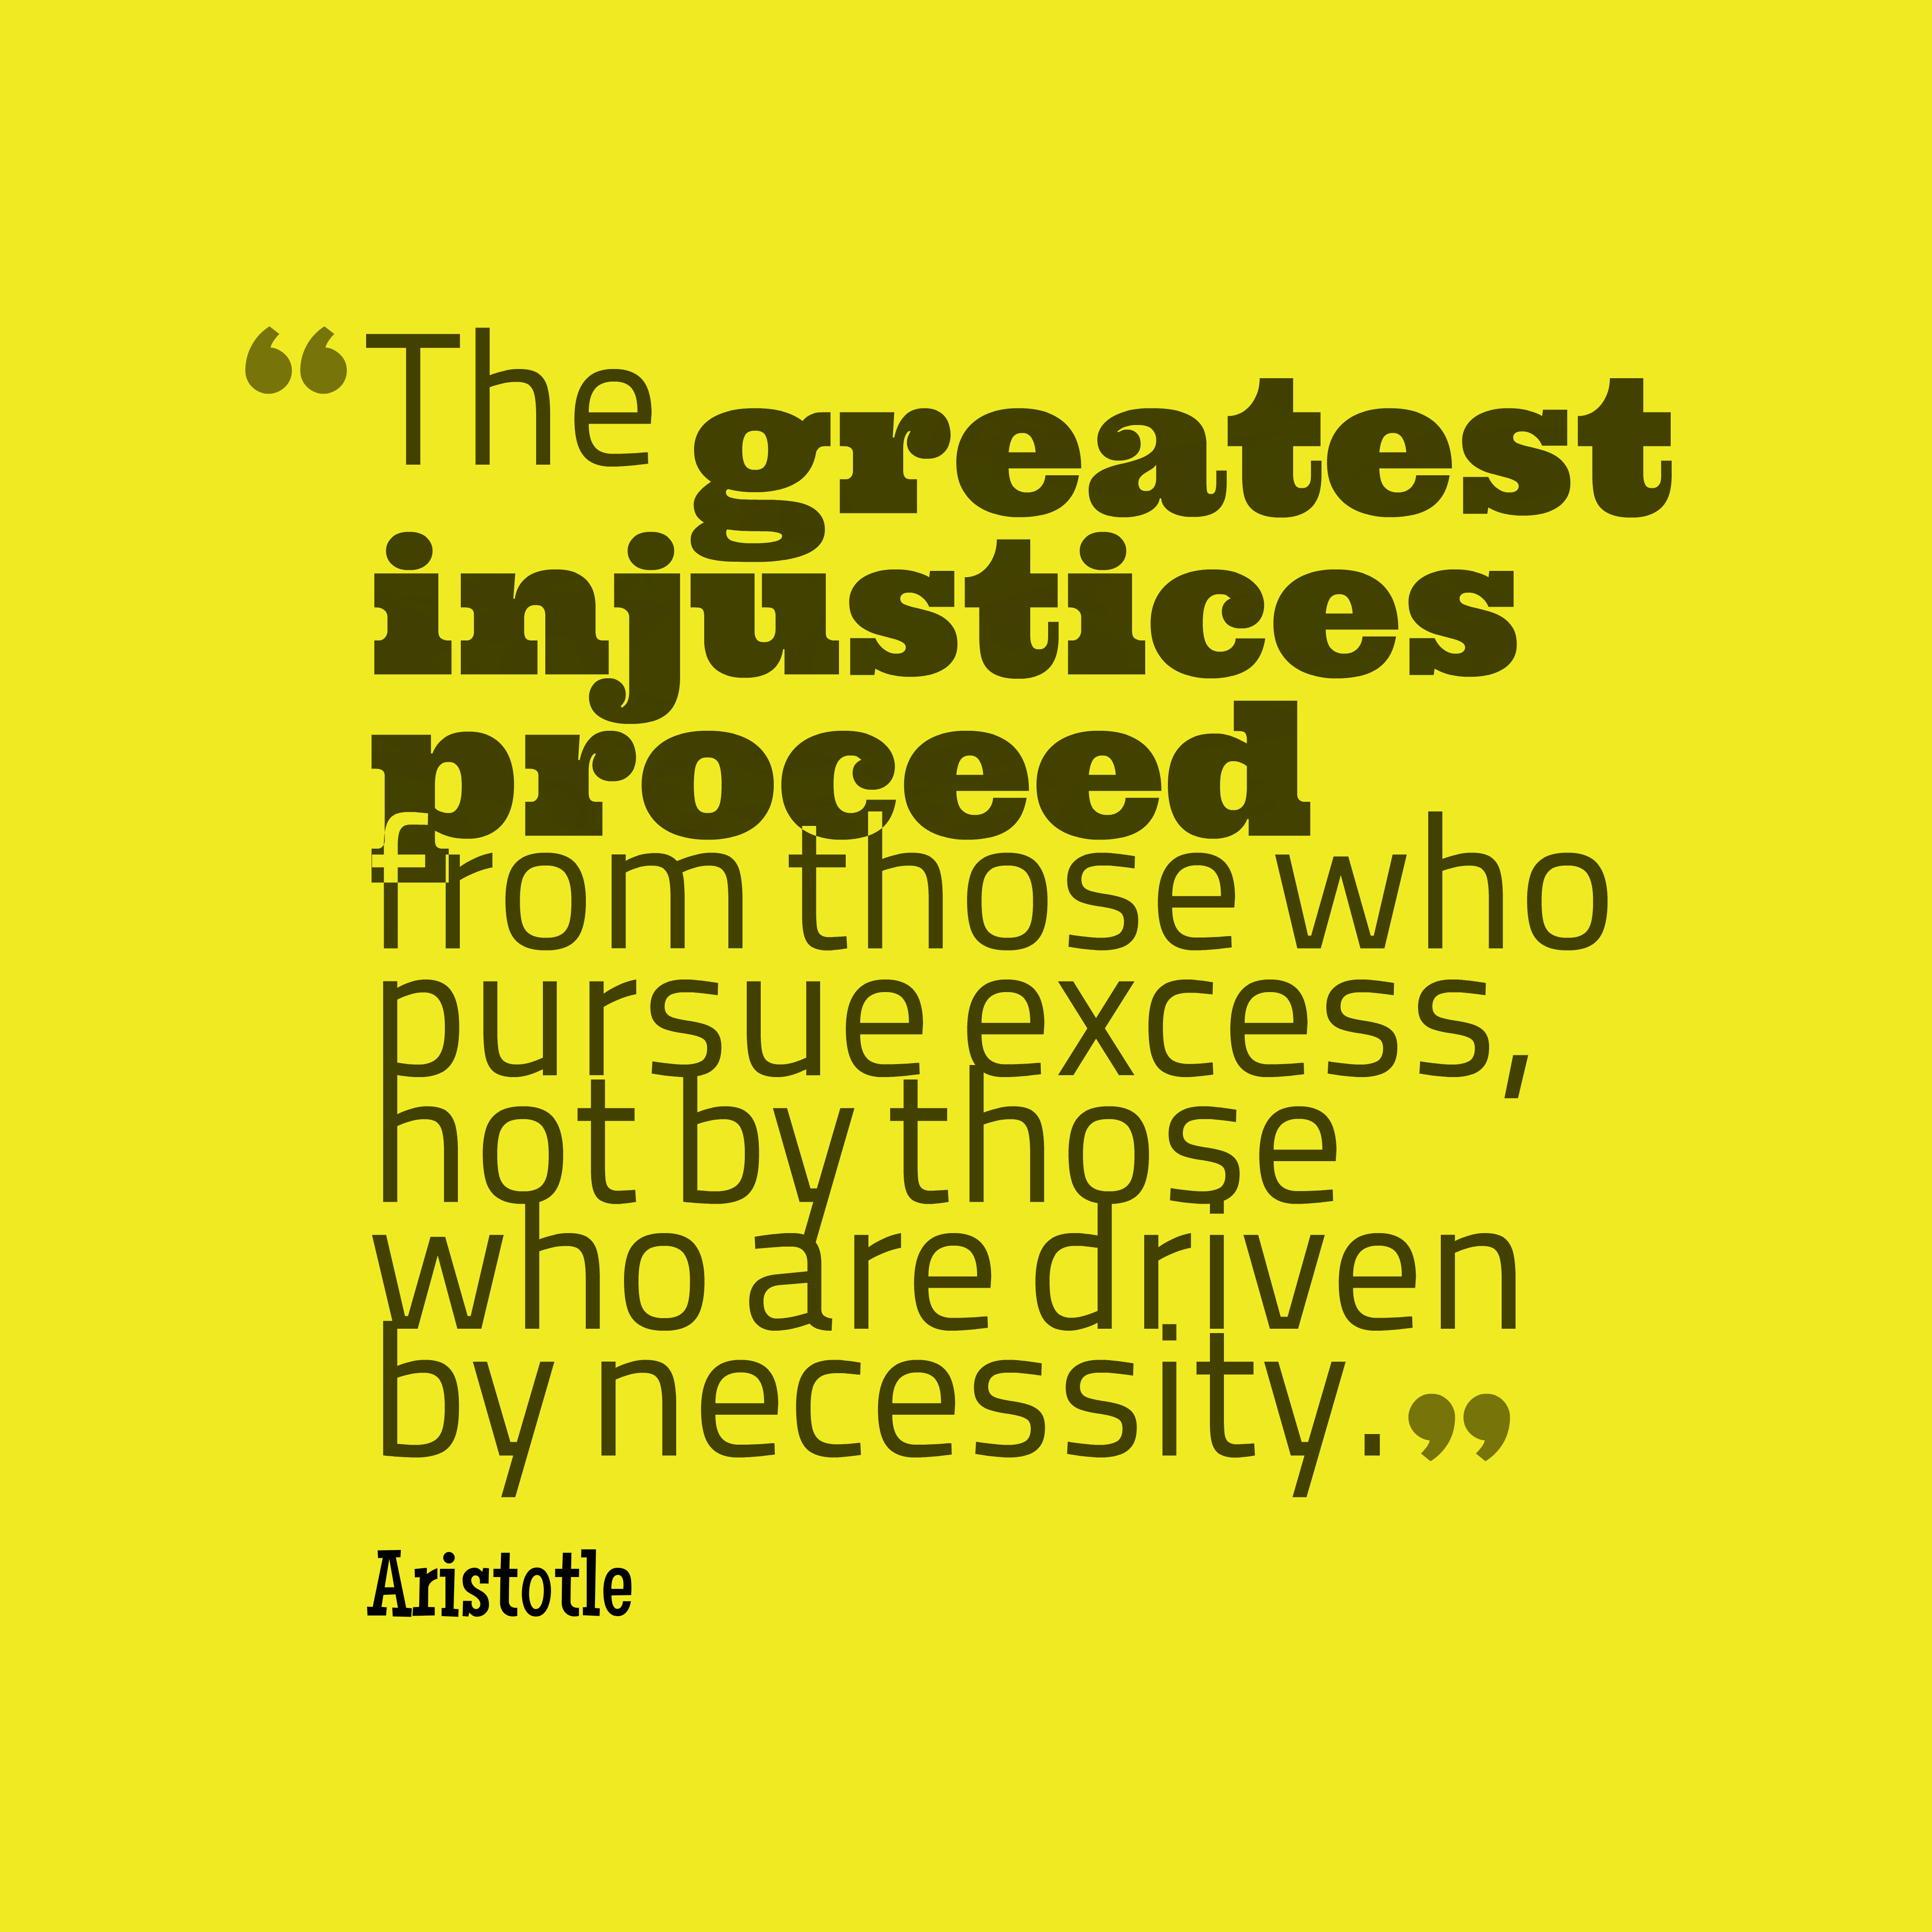 Quotes image of The greatest injustices proceed from those who pursue excess, not by those who are driven by necessity.